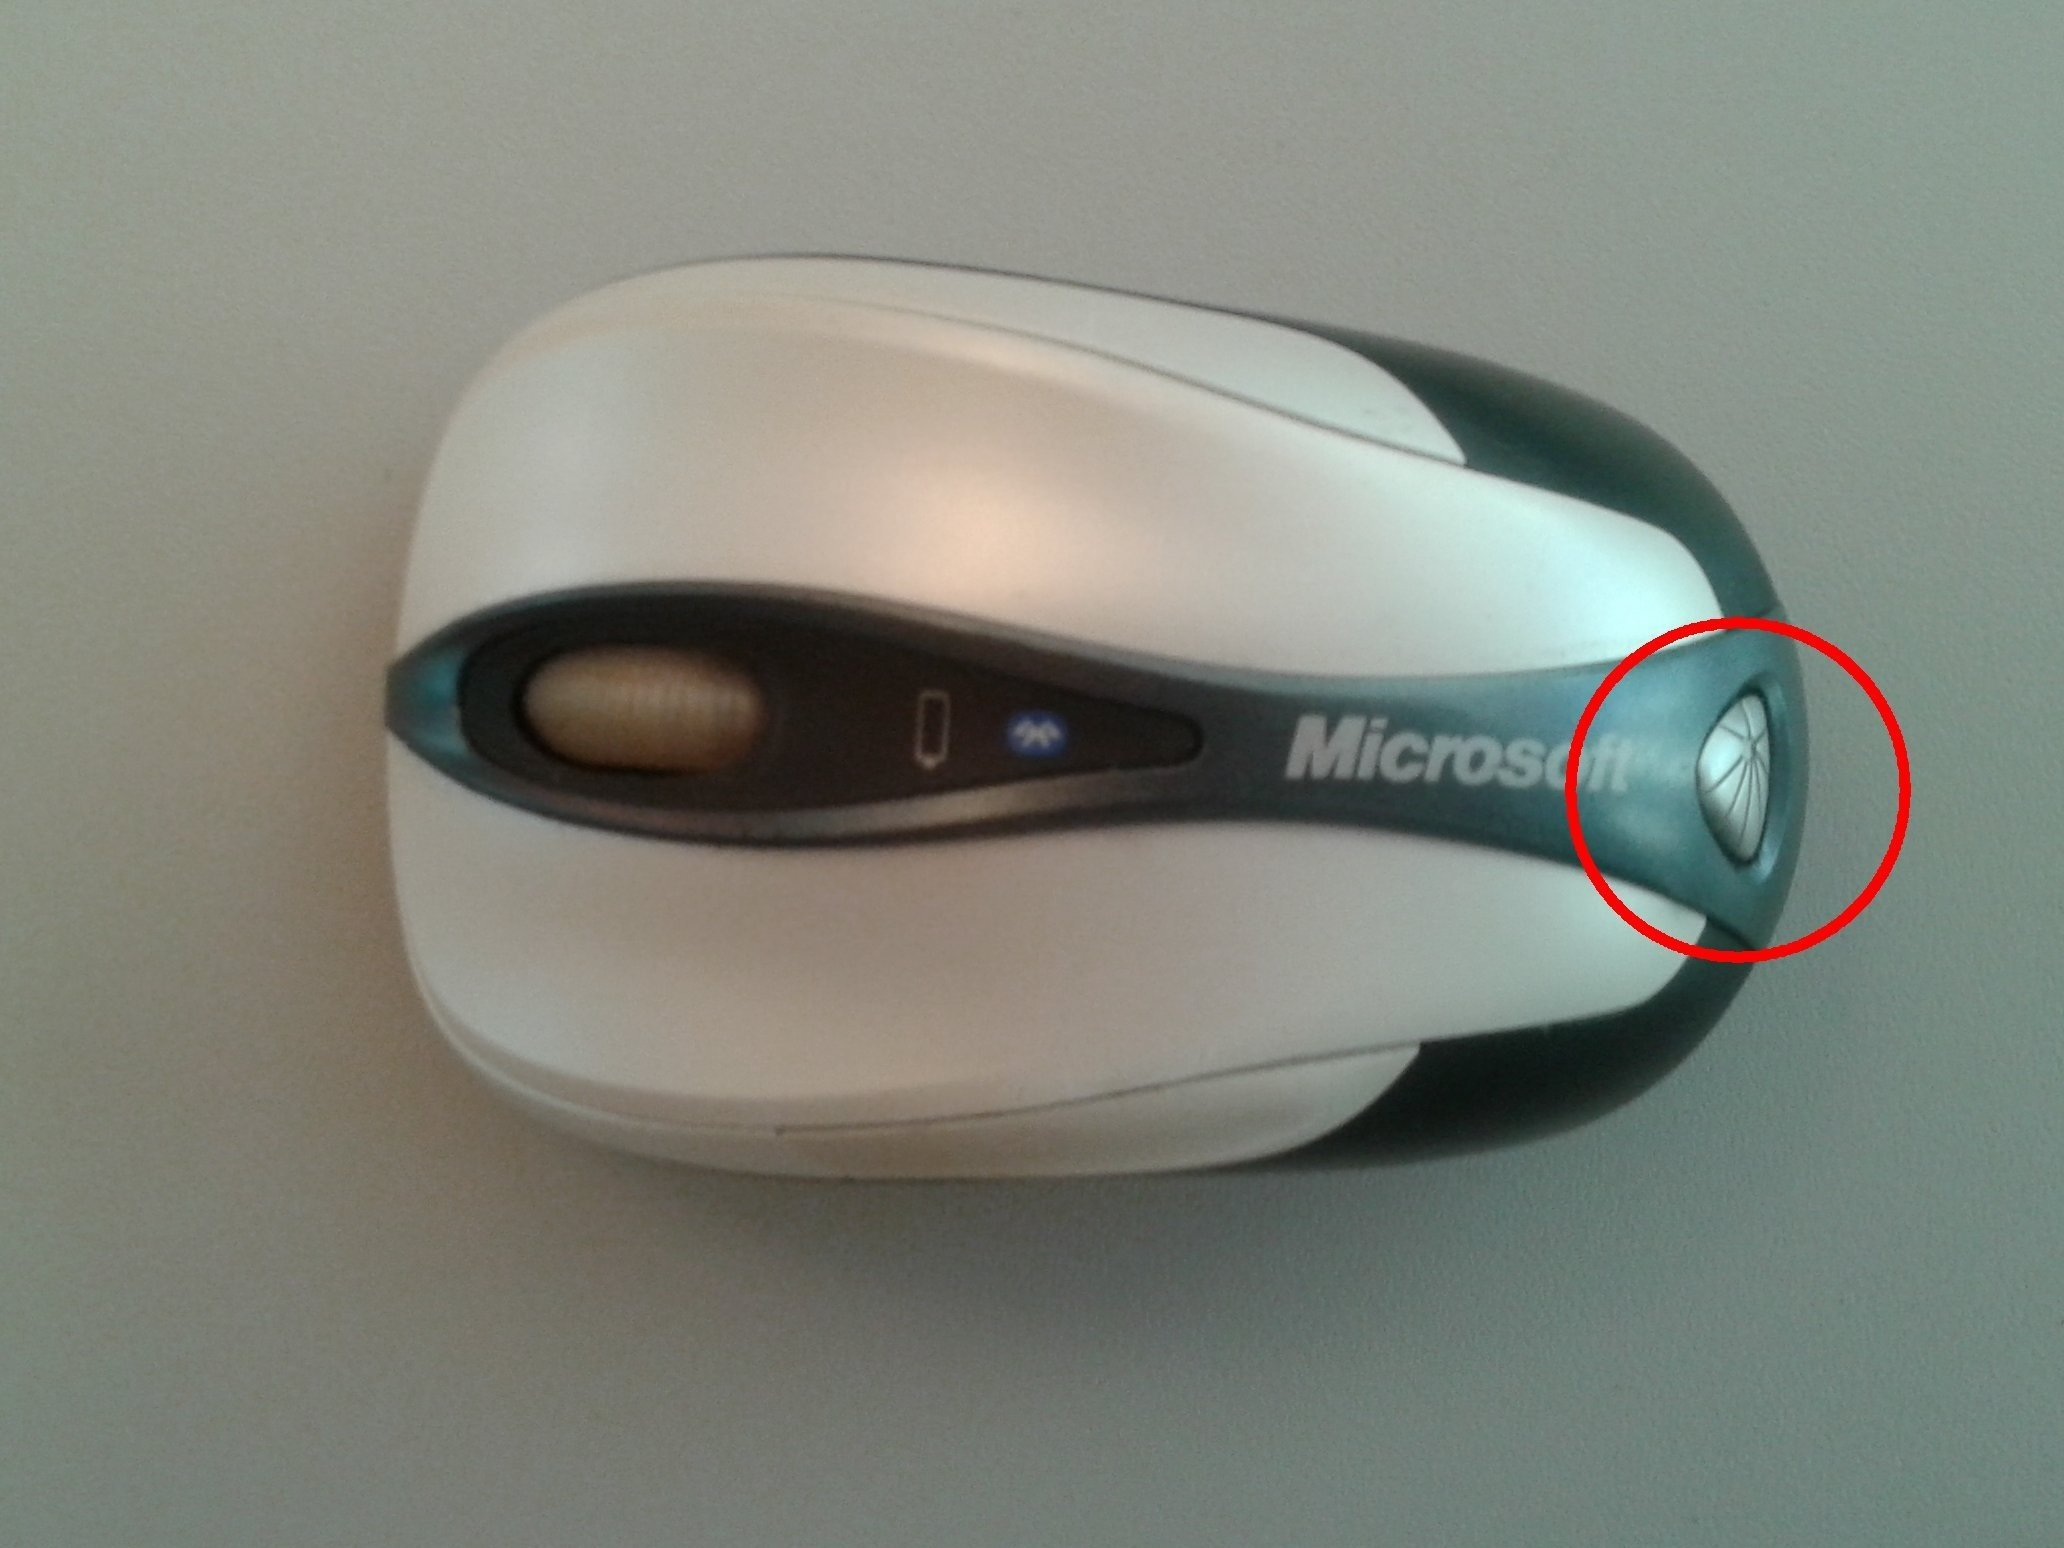 microsoft bluetooth mouse wheel not working